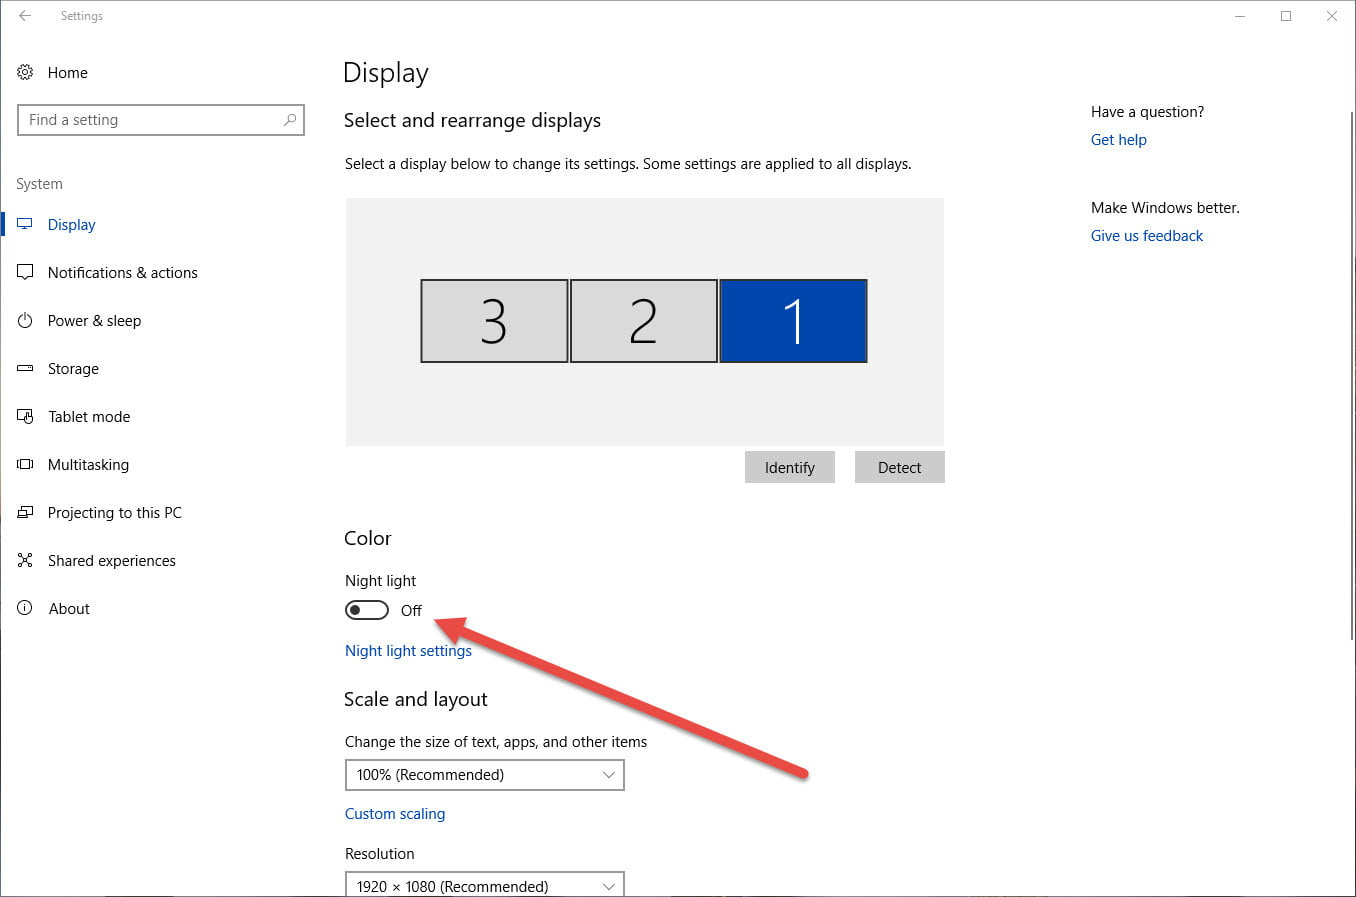 How To Use A Blue Light Filter On Pc Mac Windows 10 Night Setting